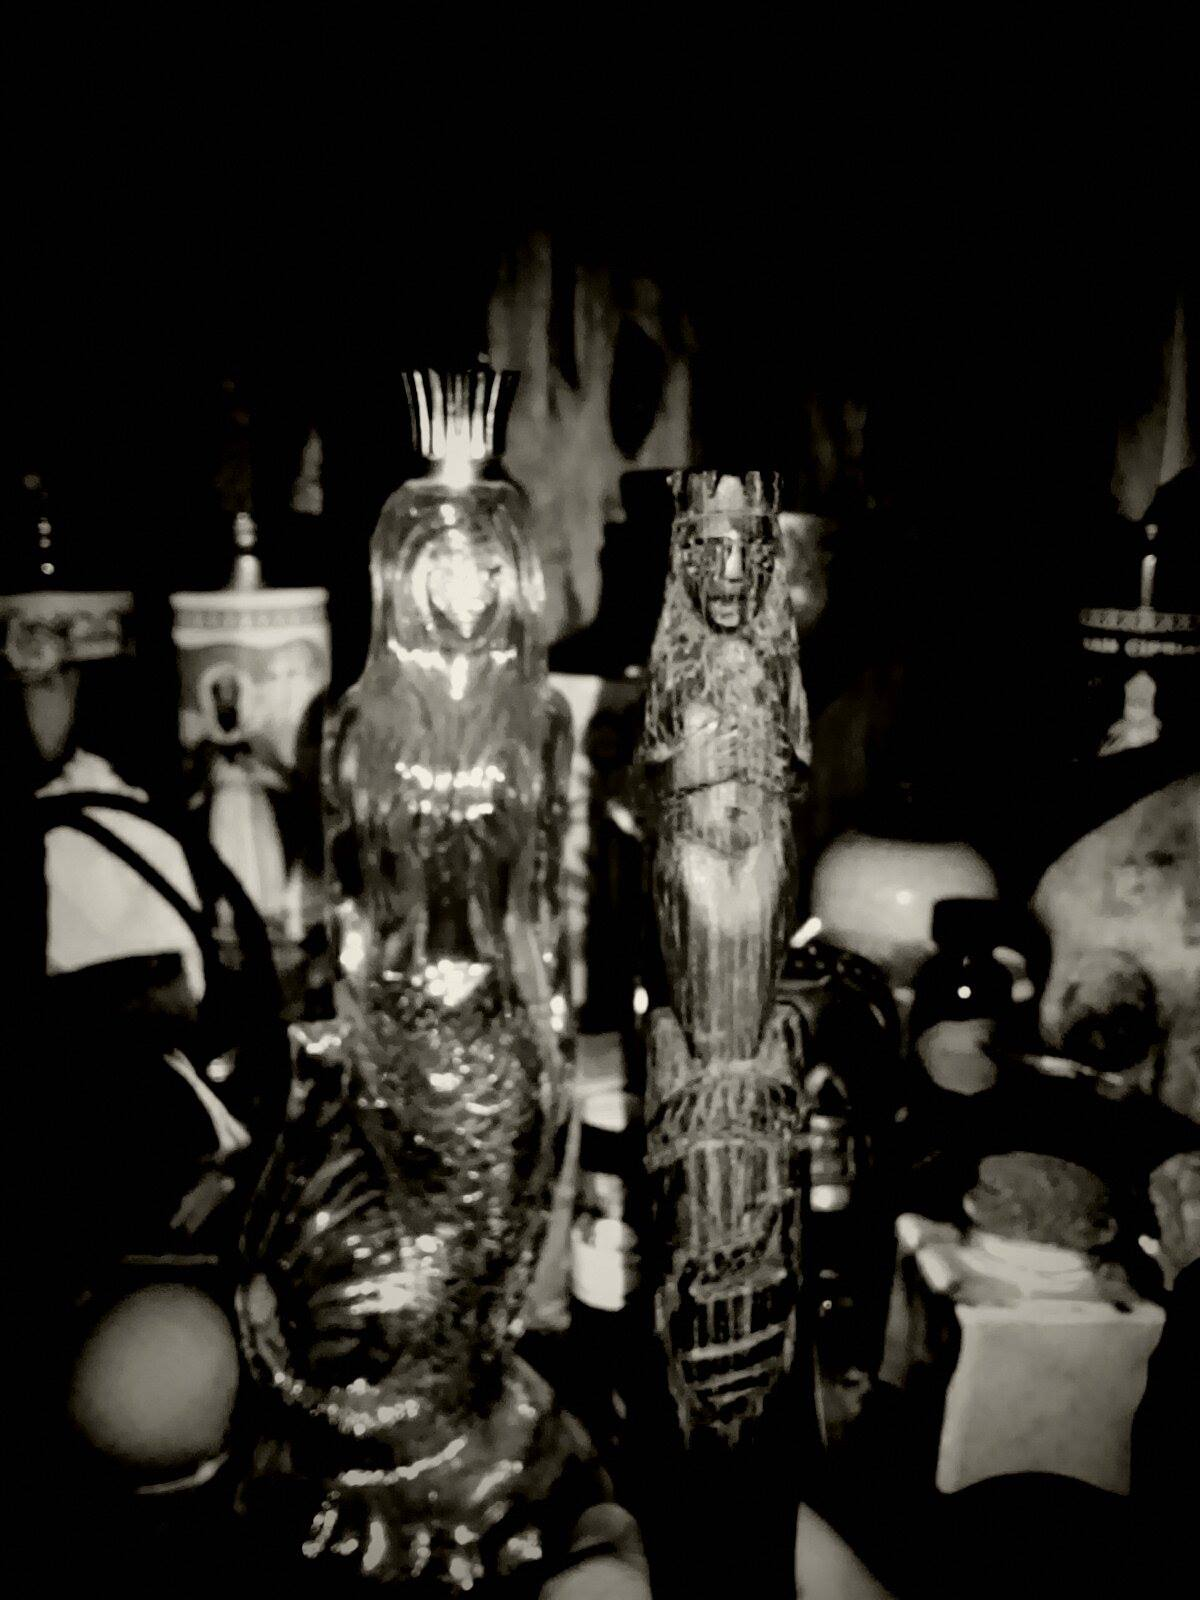 The Cultus of La Sirena: Perfume created by spirits for spirits